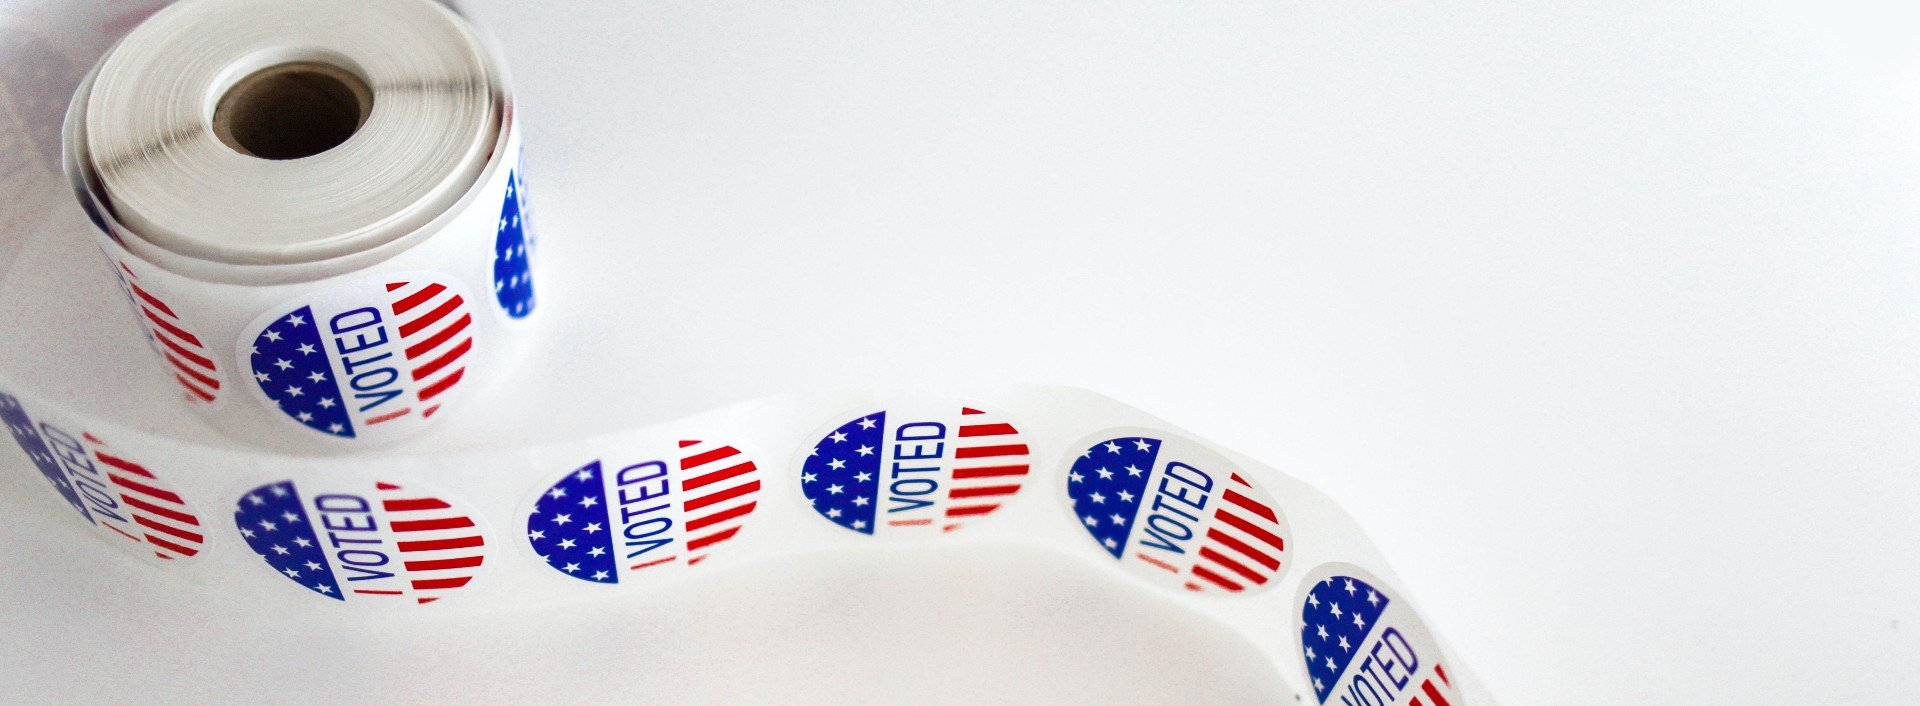 "Election vocabulary: a roll of stickers saying ""I voted"" to be given out on Election Day."